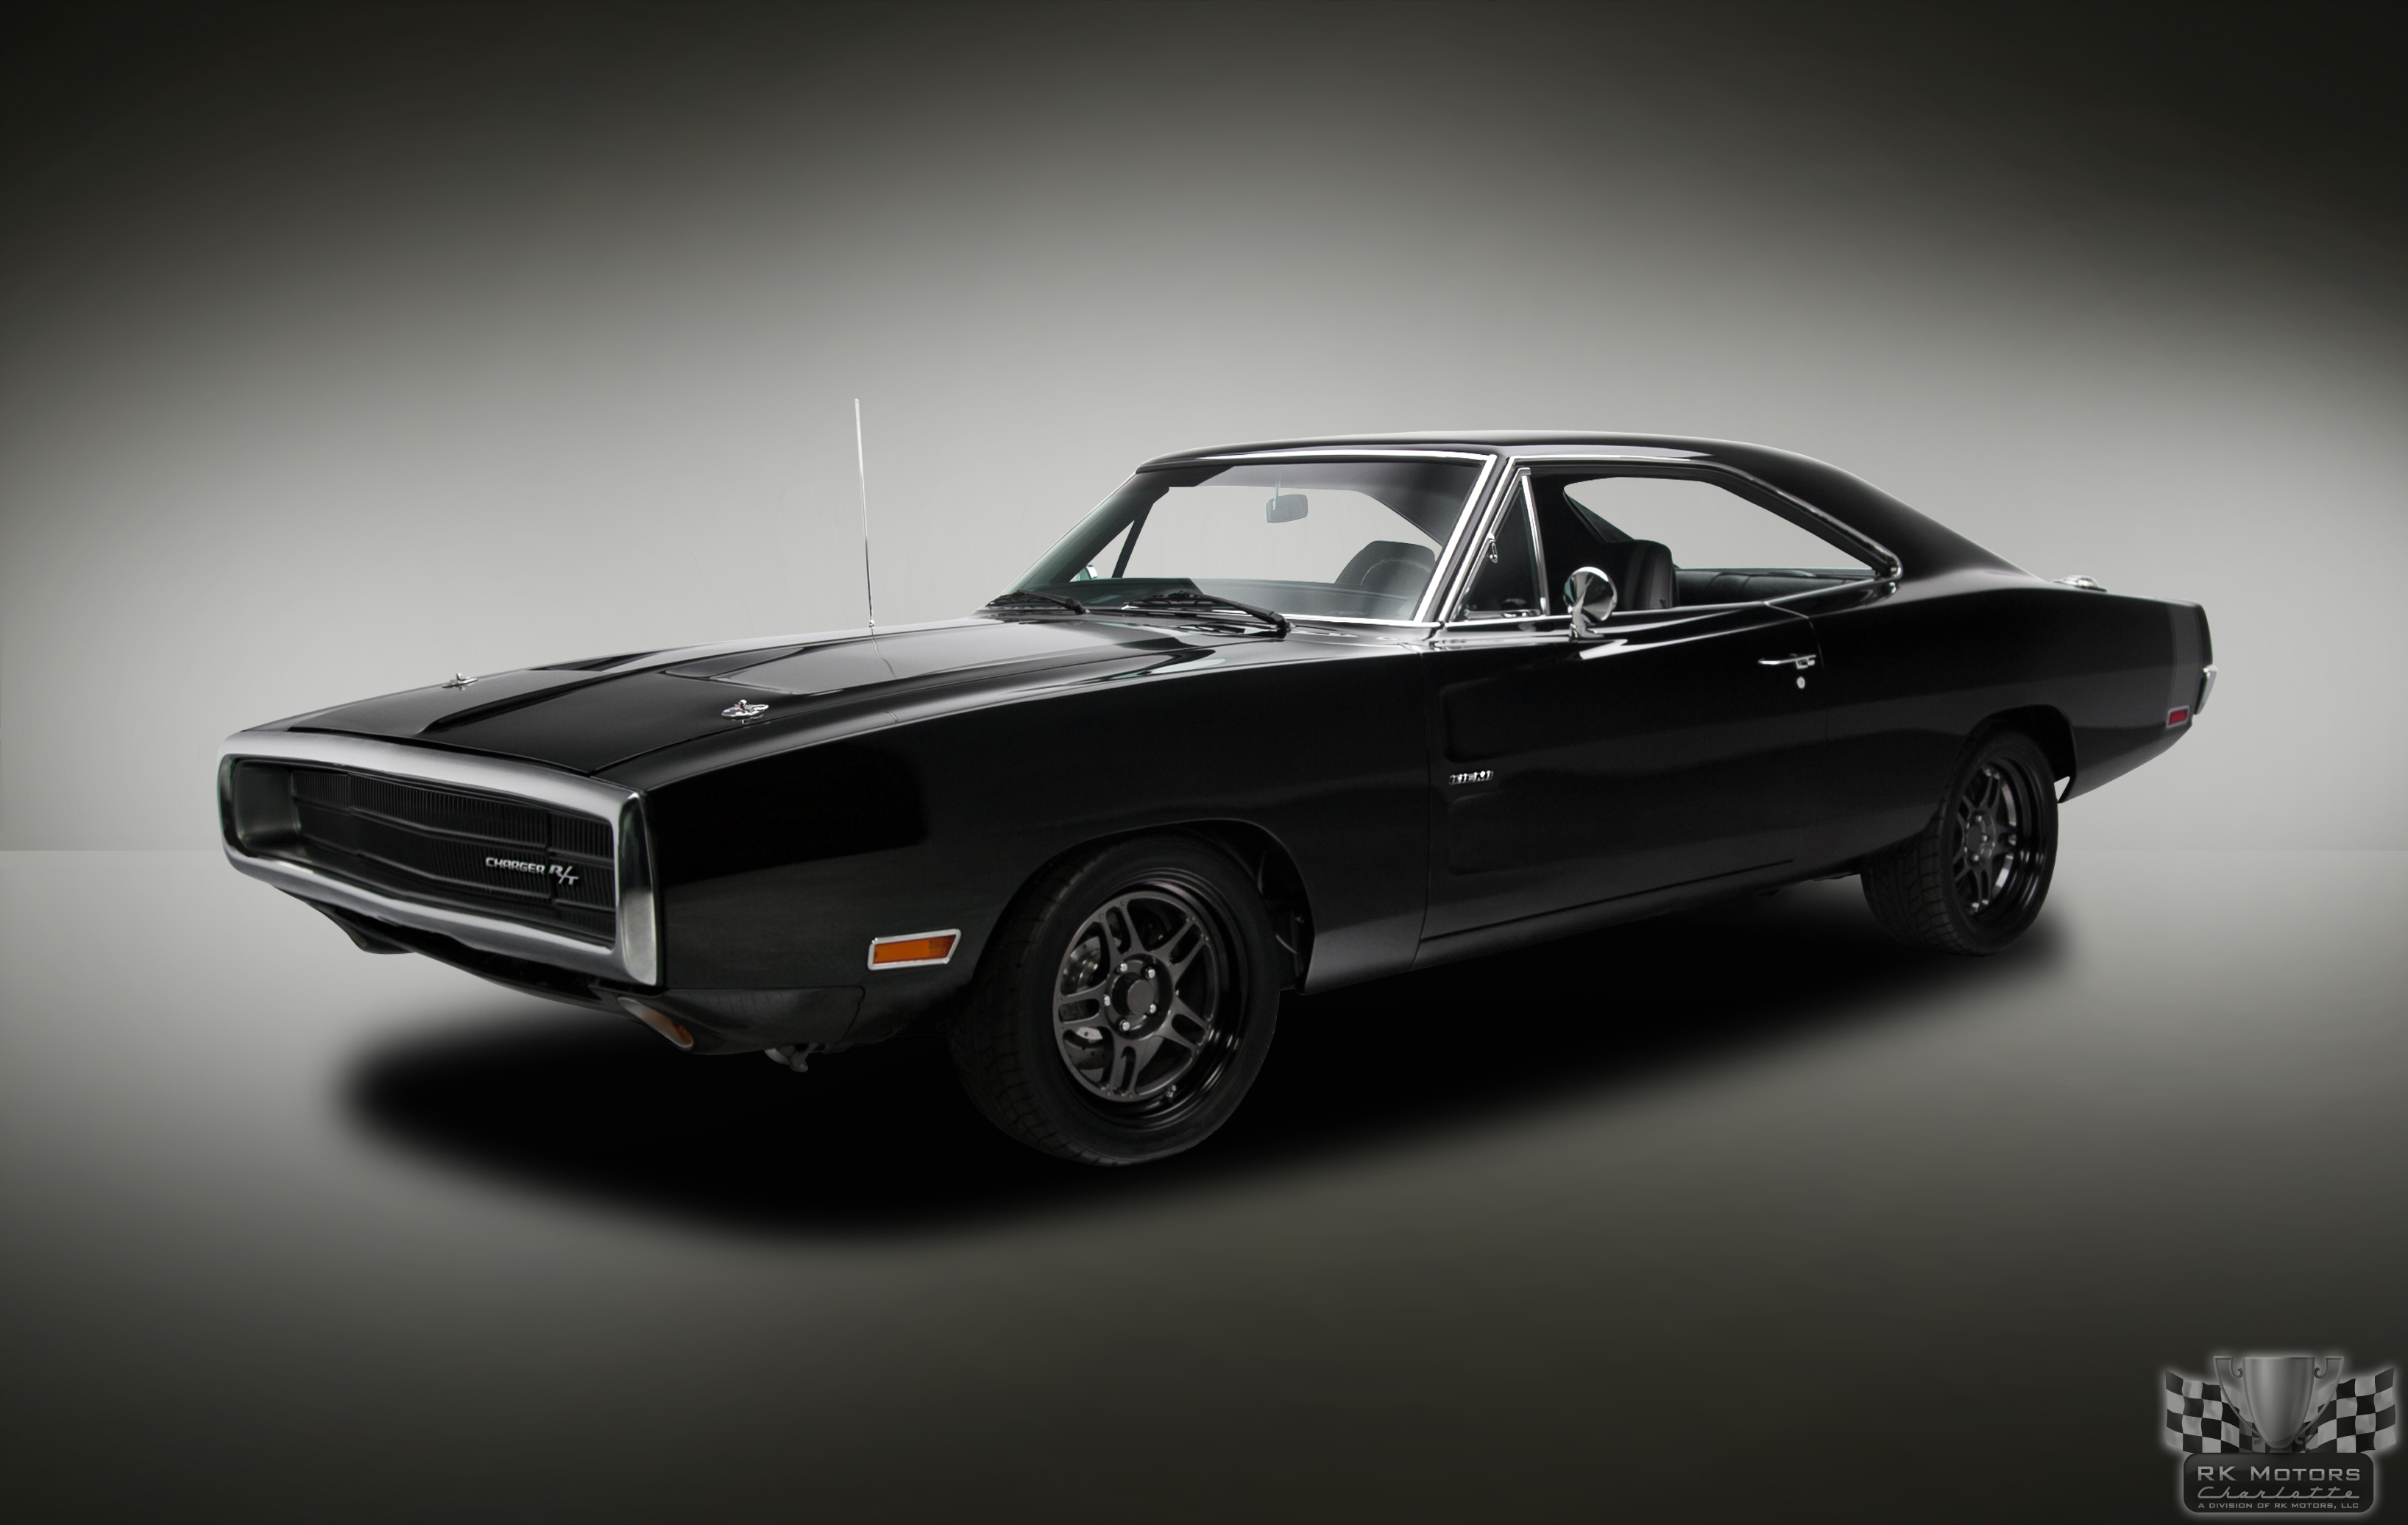 Charger R T Indy Hemi Muscle Cars Wallpaper